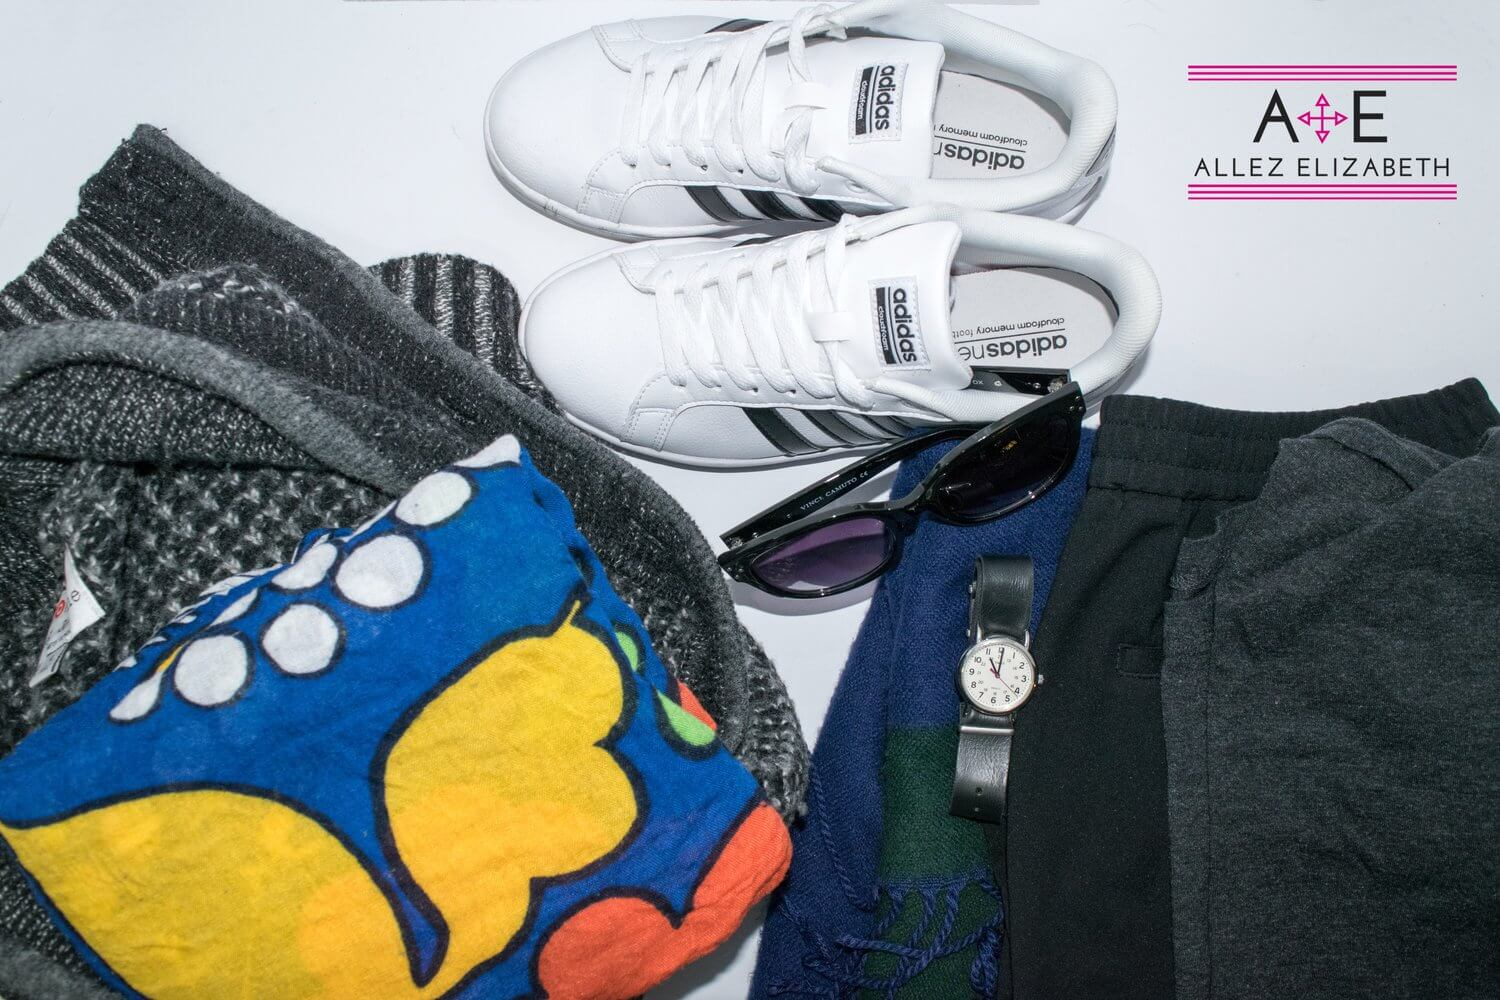 ALLEZ ELIZABETH - AIRPORT OUTFIT FLATLAY ADIDAS SHOES, GRAY CARDIGAN, COLORFUL SCARF, SUNNIES, WATCH, PONTE PANTS AND A LONG SLEEVE TEE